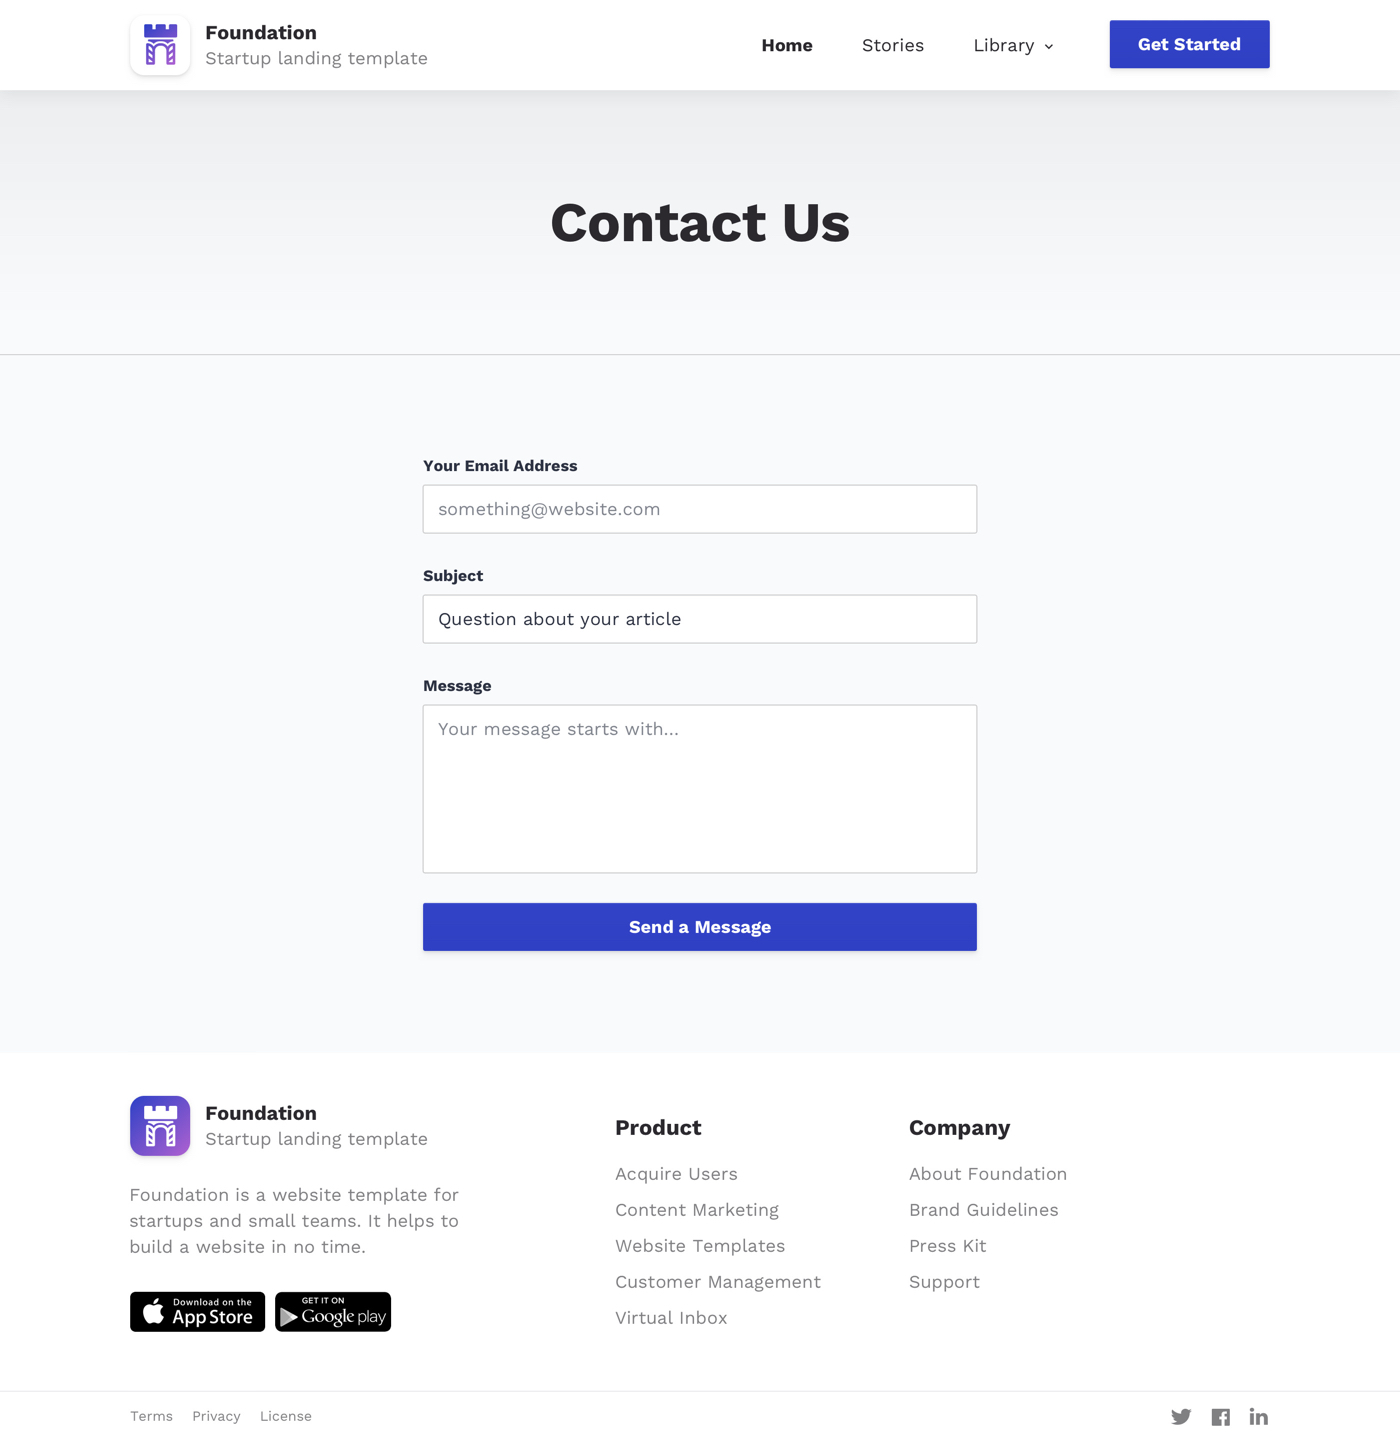 Foundation - Free Landing Page Design - Foundation is a free website design template for Sketch App. It consists of 5 premade pages and many pre-designed blocks. Foundation fits perfect for everyone who wants to design a website for a startup or a landing page. It uses free fonts from Google, free illustrations and icons.